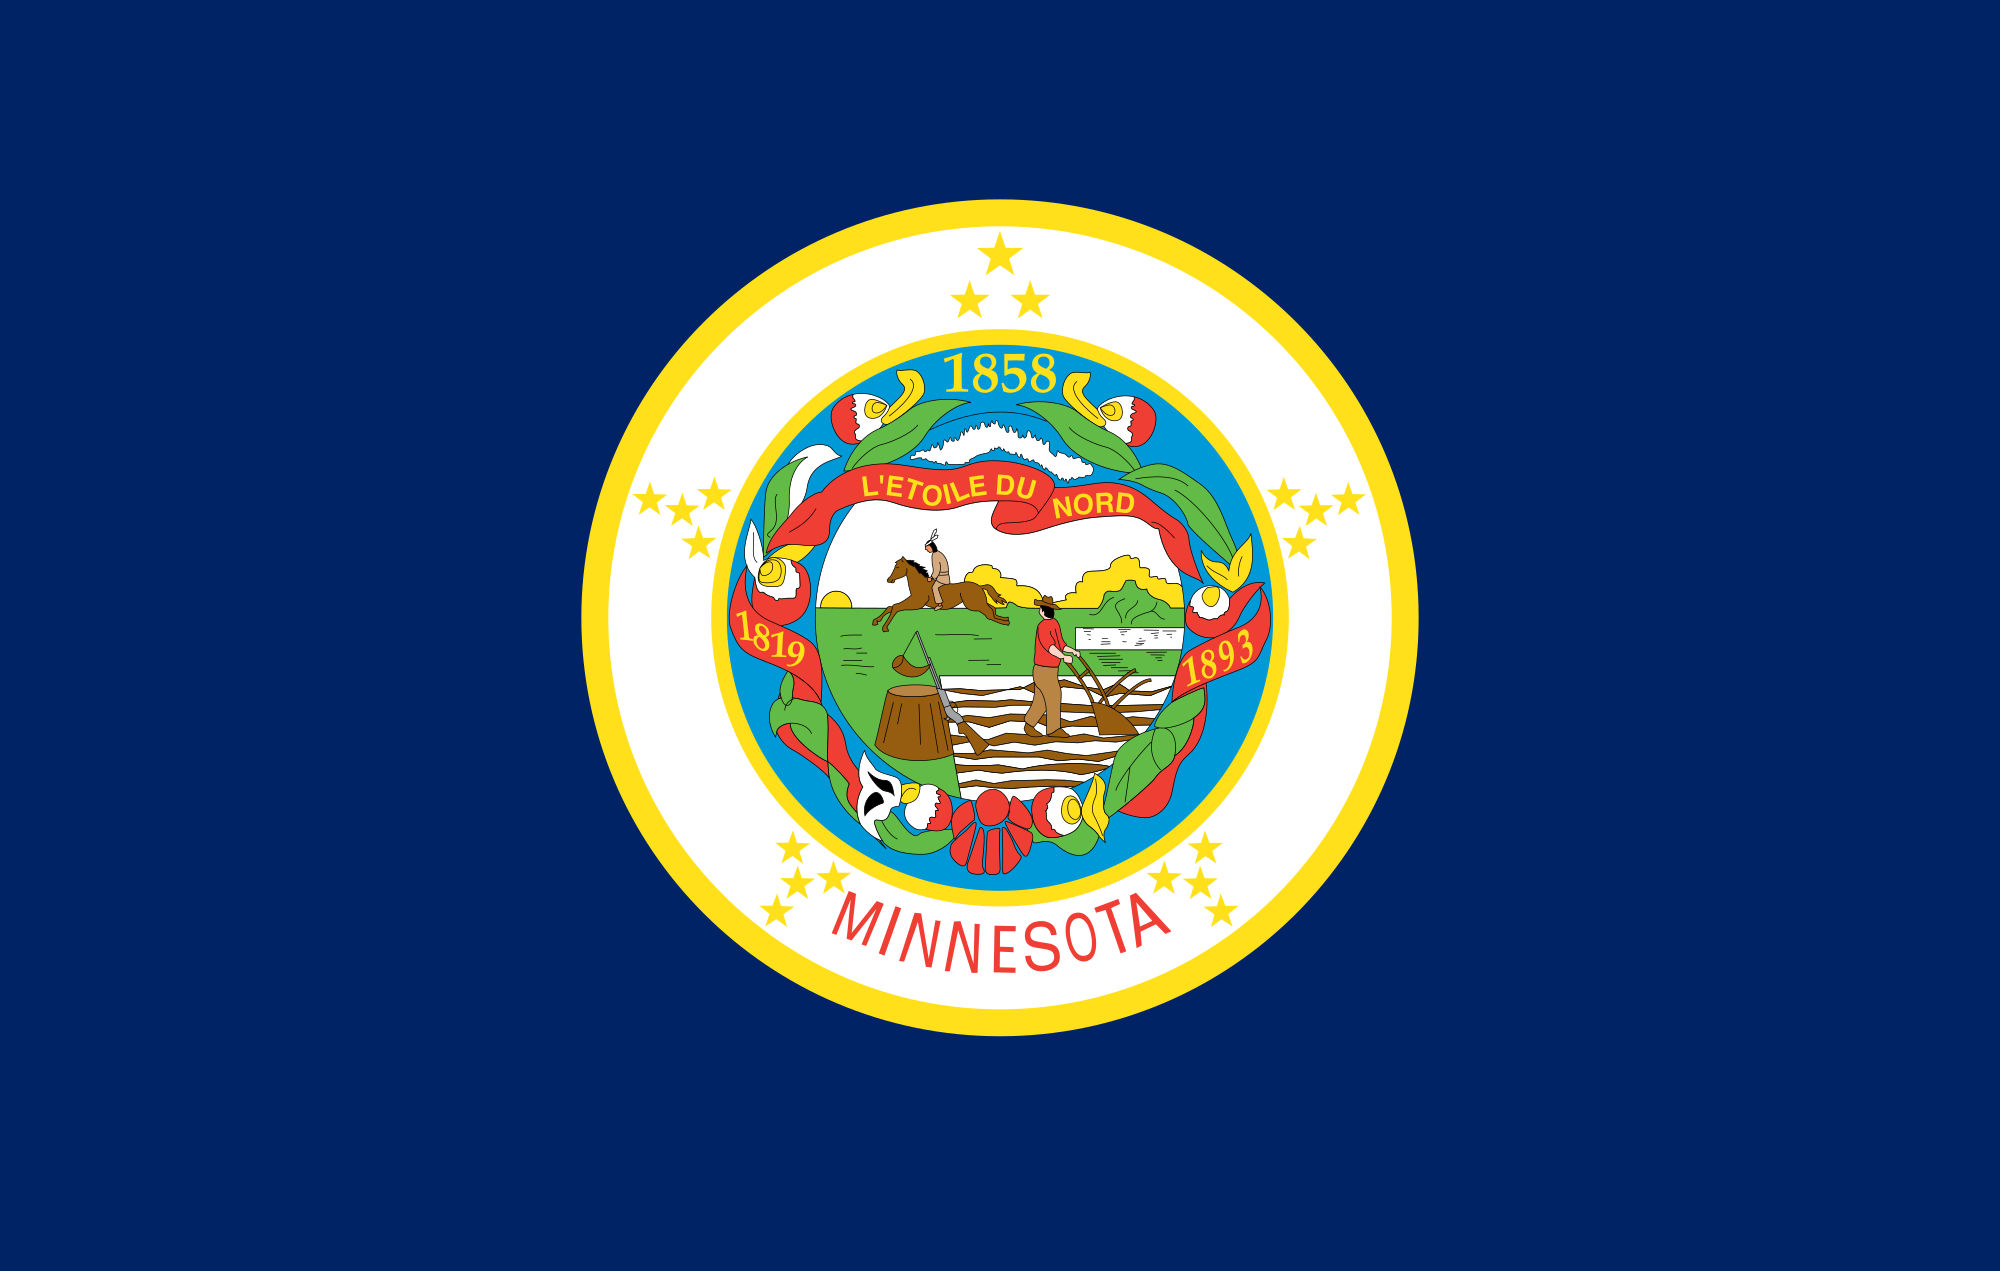 - MINNESOTA DRONE REGISTRATION